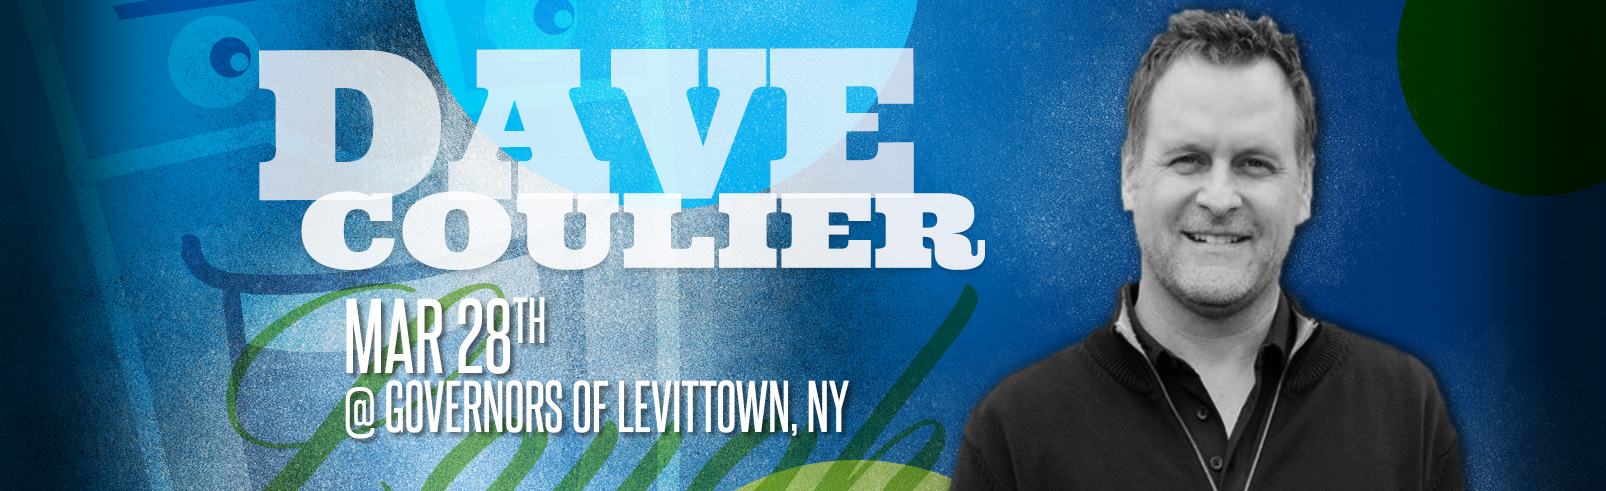 Dave Coulier @ Governors of Levittown